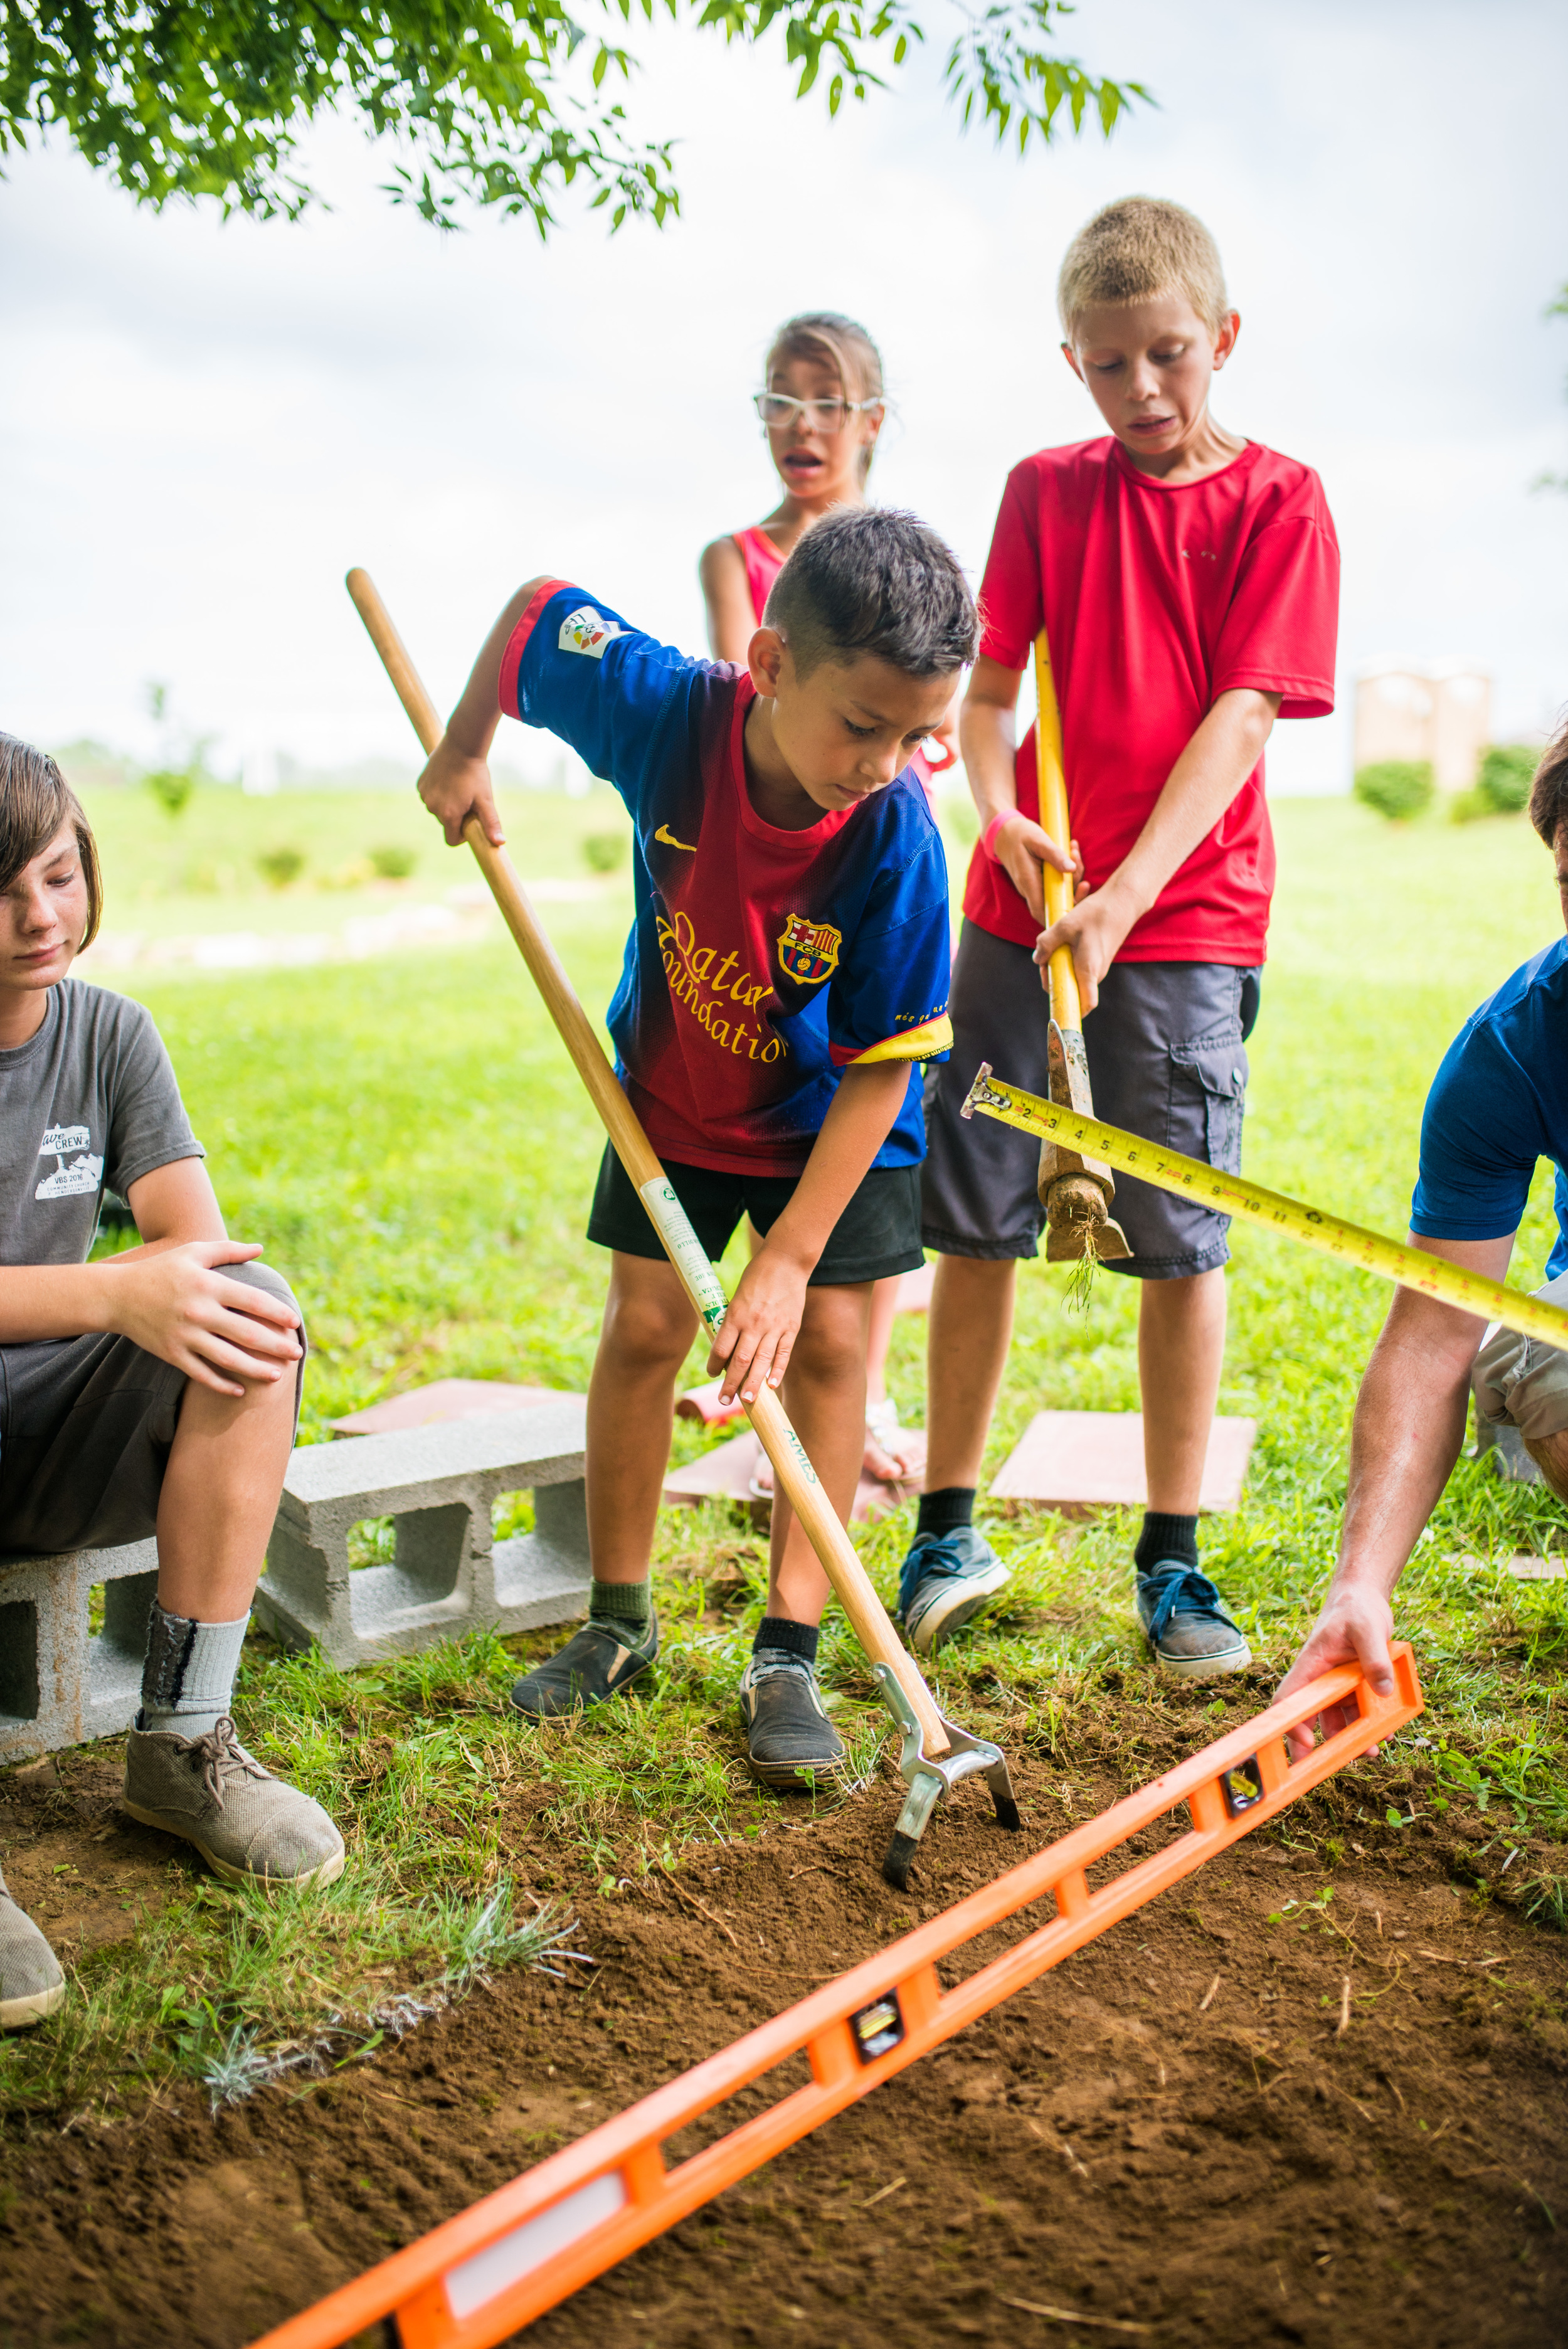 The property at our Old Hickory site is always subject to the educational endeavors of our youth. Justice Garner and Jones Warren work to level off a section of land for the new block built fire pit. The land is to be used, and in this case it was to teach simple masonry skills for the development of practical wisdom for our campers. That's real dirt, real blocks, real tools, and they are really doing all the work to create.